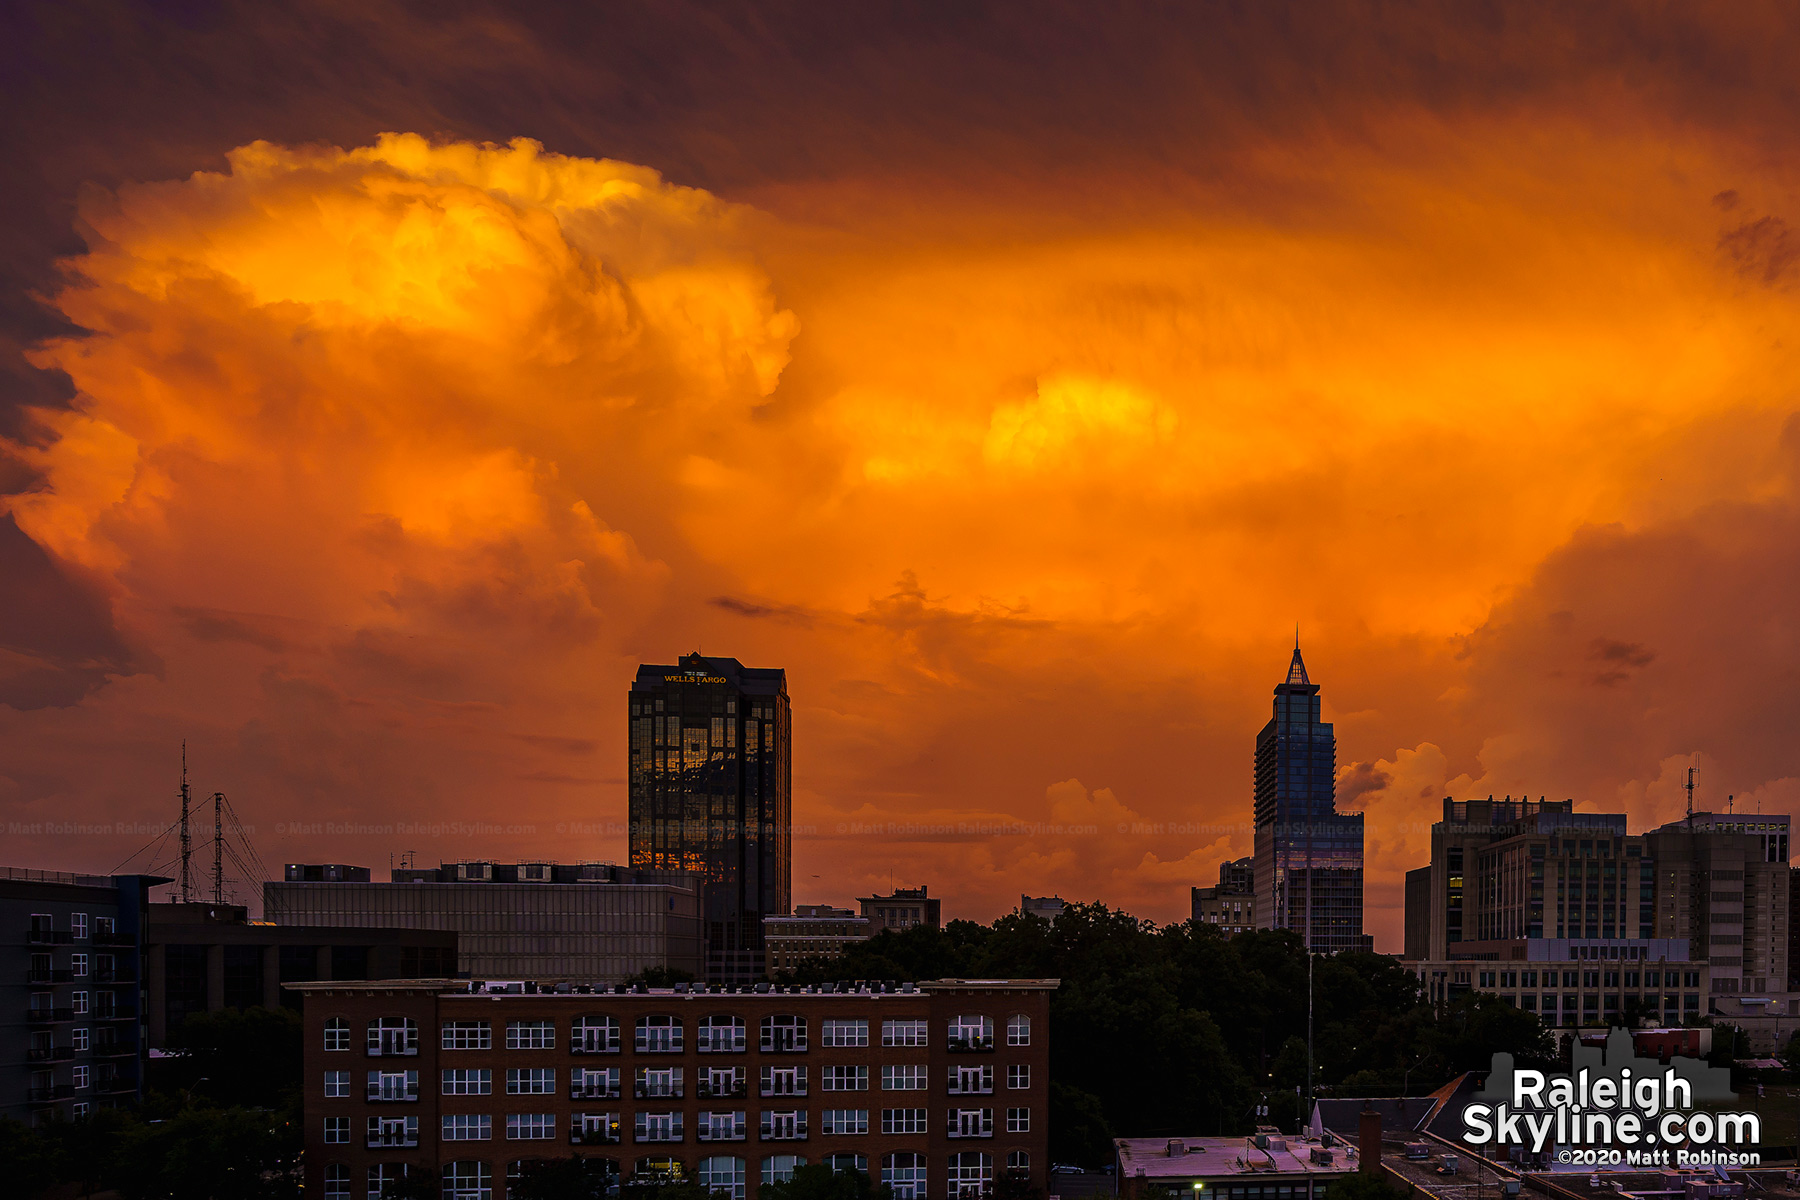 A thunderstorm to the east of downtown Raleigh lit up just after sunset on August 8, 2020